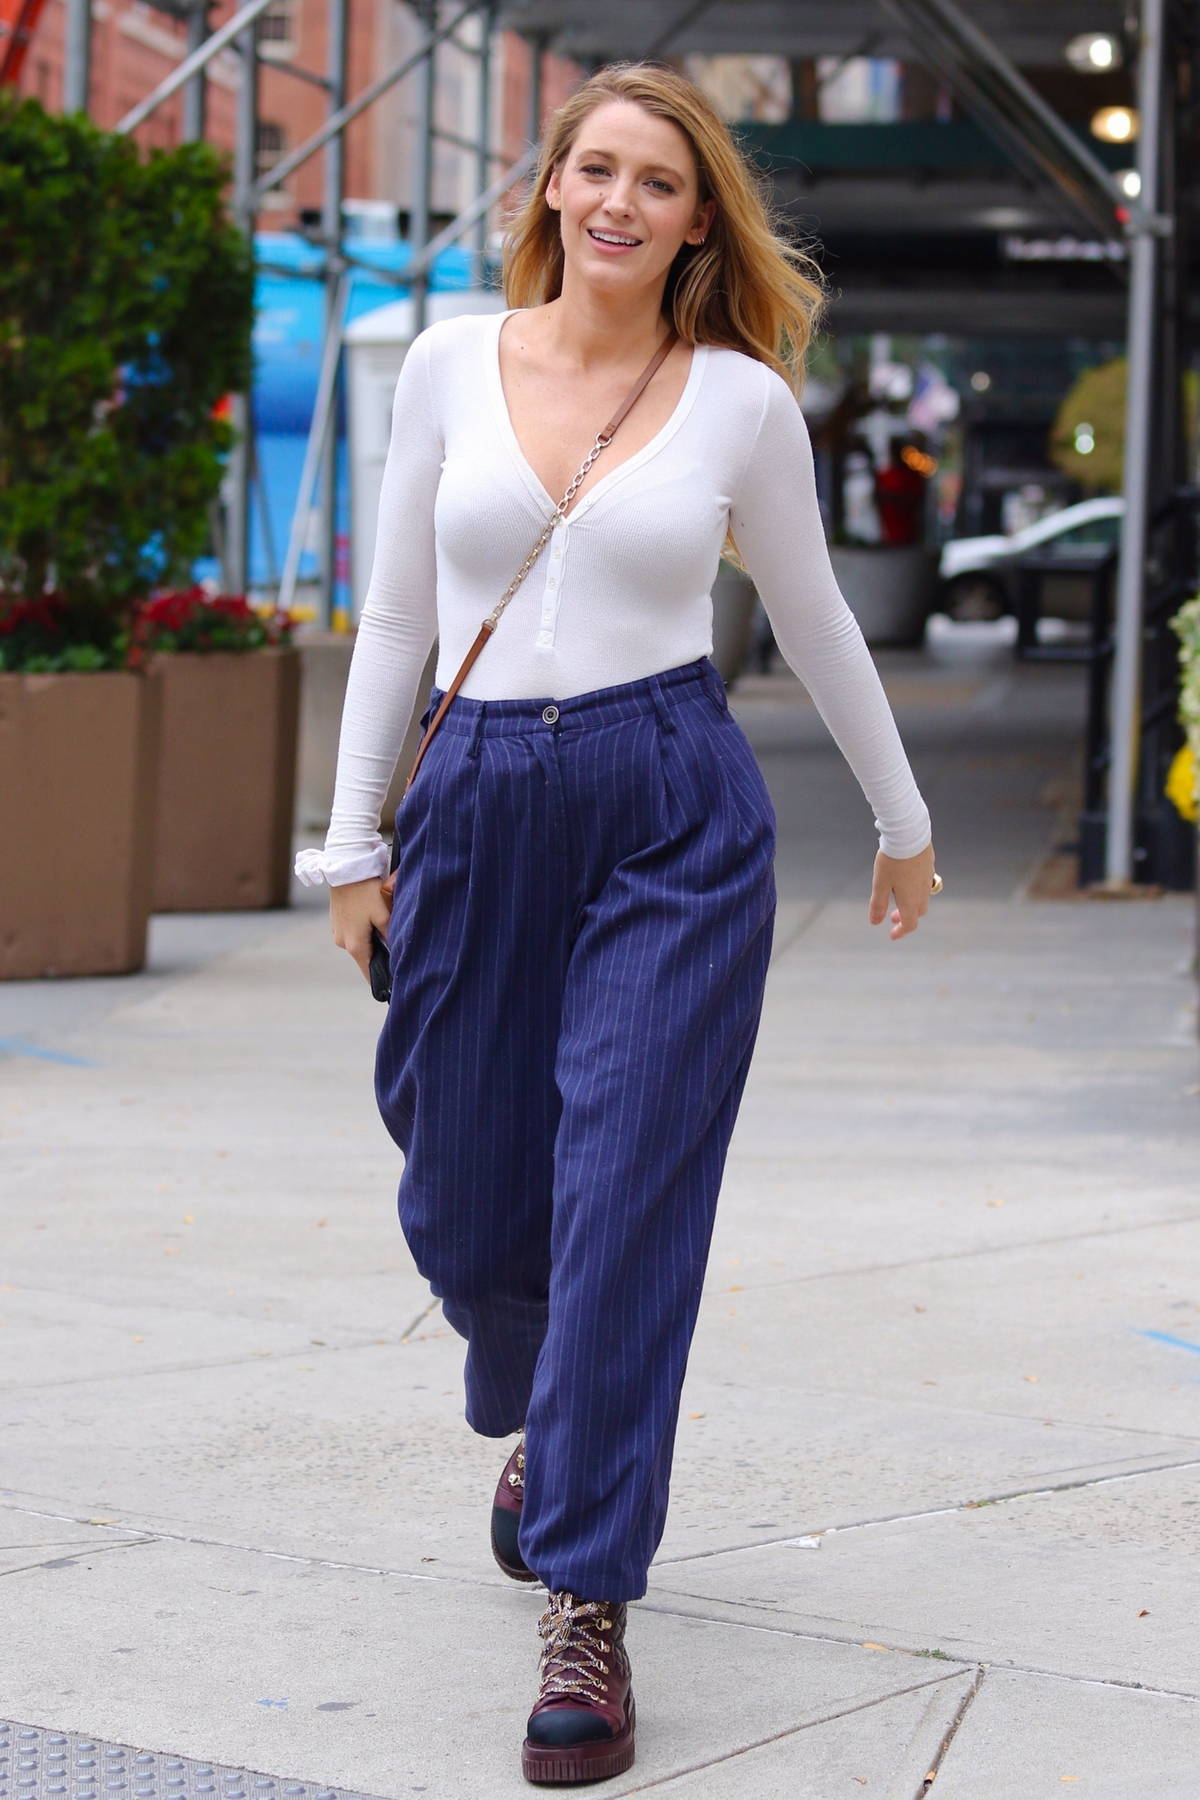 Blake Lively looks stylish wearing a white long-sleeve top and striped blue pants while running errands in New York City